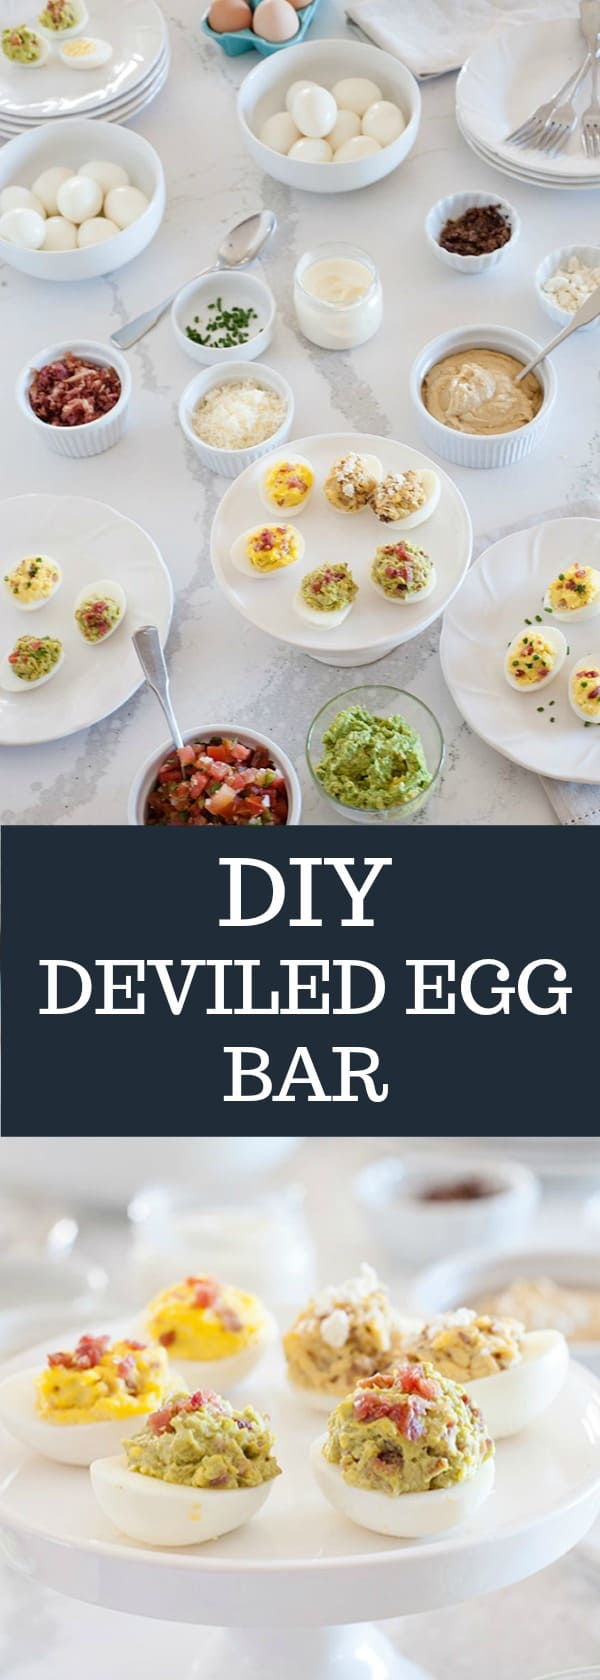 Have a lot of hard-boiled eggs? Turn them into a DIY Deviled Egg Bar for a fun party dish that you and your guests will love!